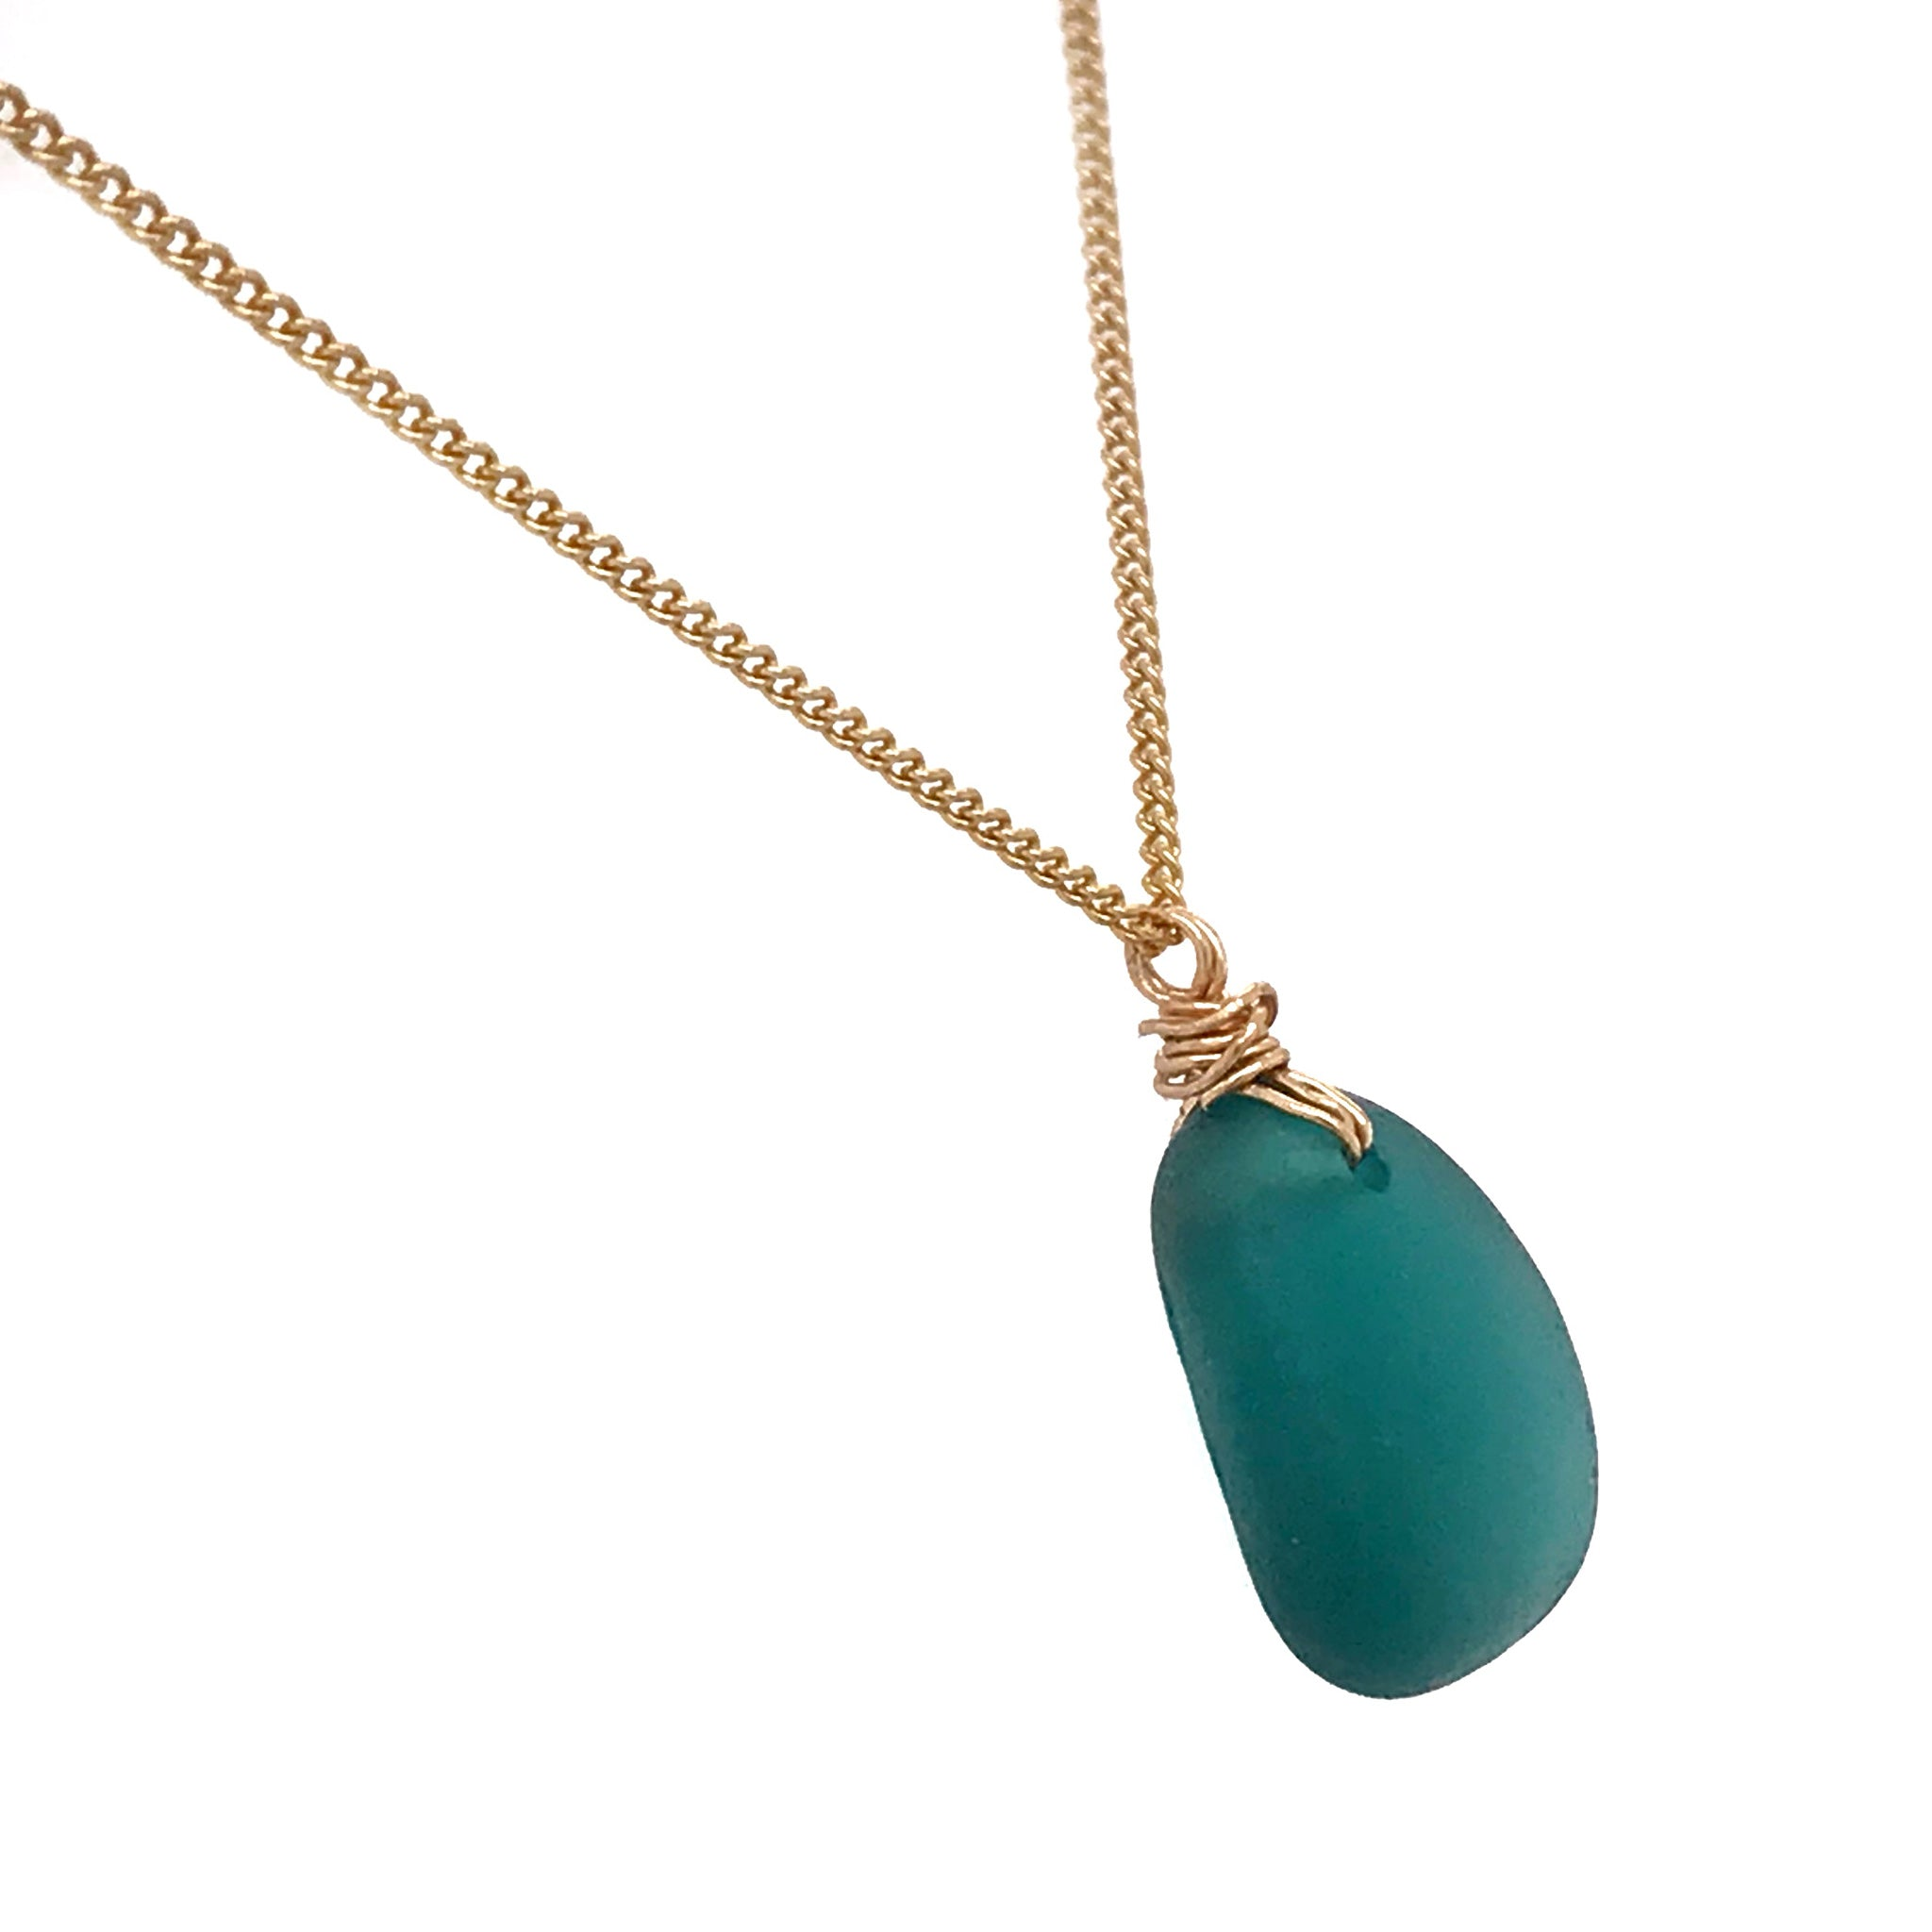 teal green seaglass on gold chain necklace kriket broadhurst jewellery